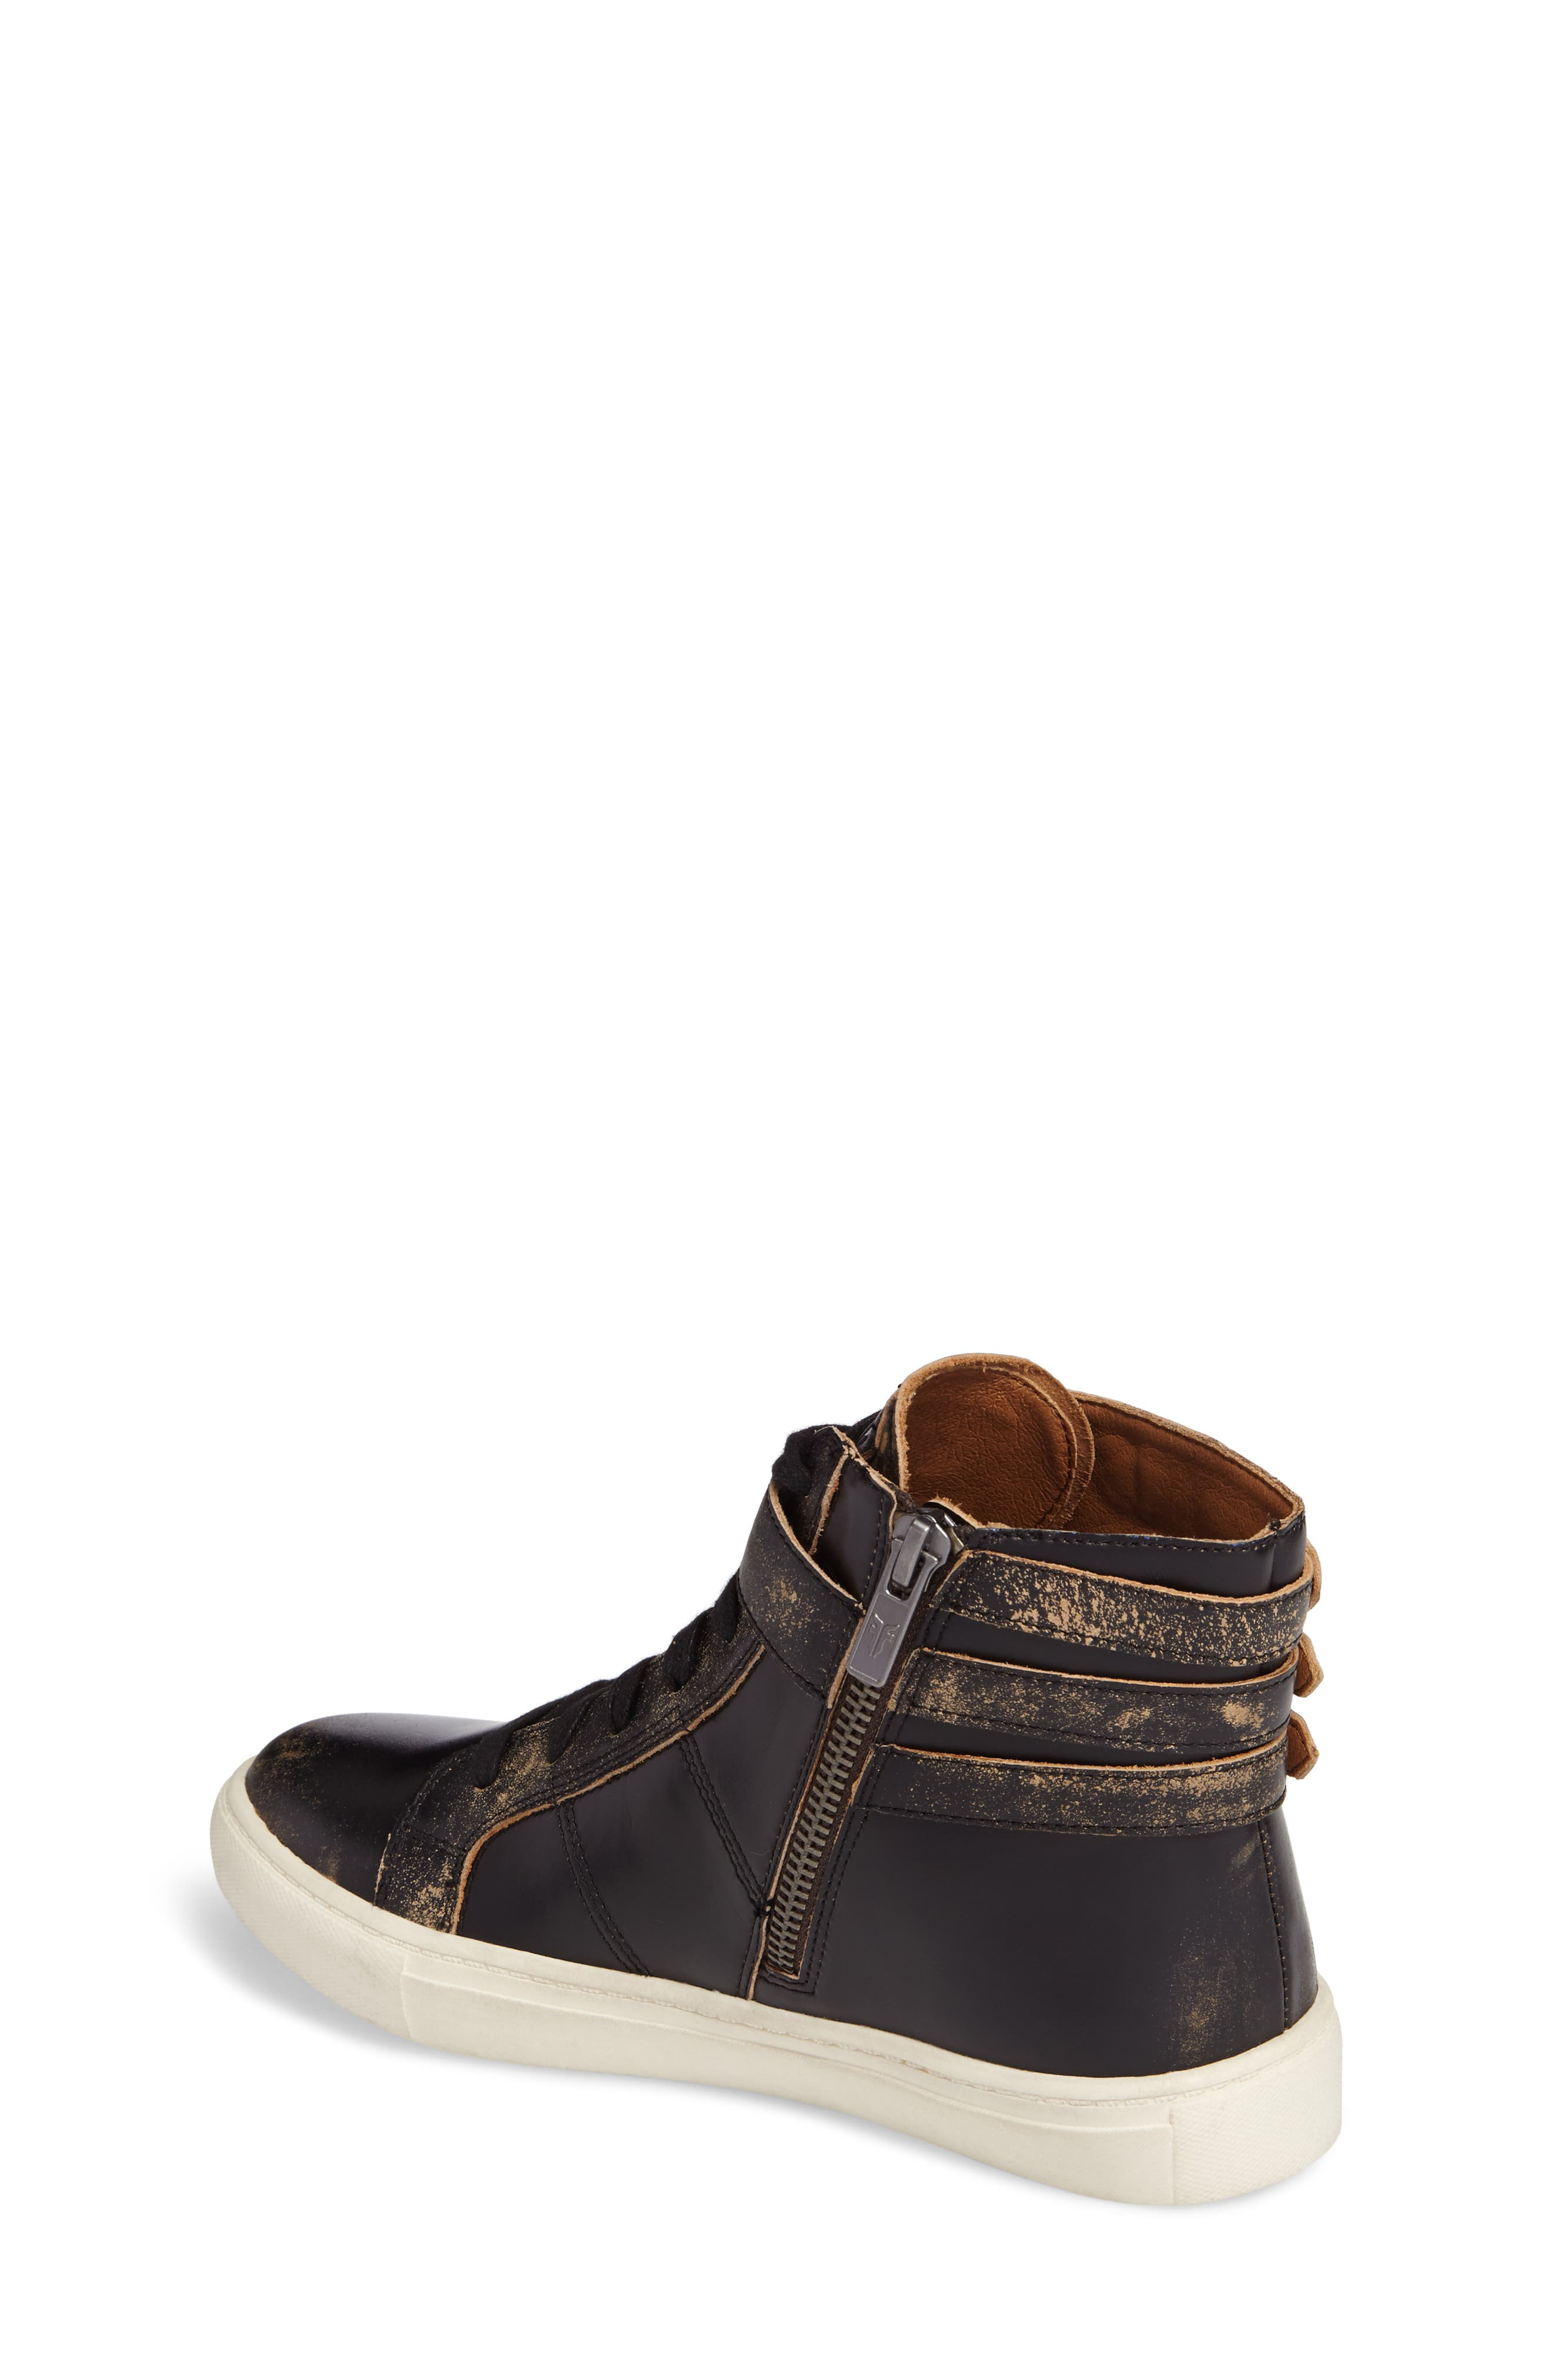 Alternate Image 2  - Frye Dylan Buckle Strap High-Top Sneaker (Toddler, Little Kid & Big Kid)